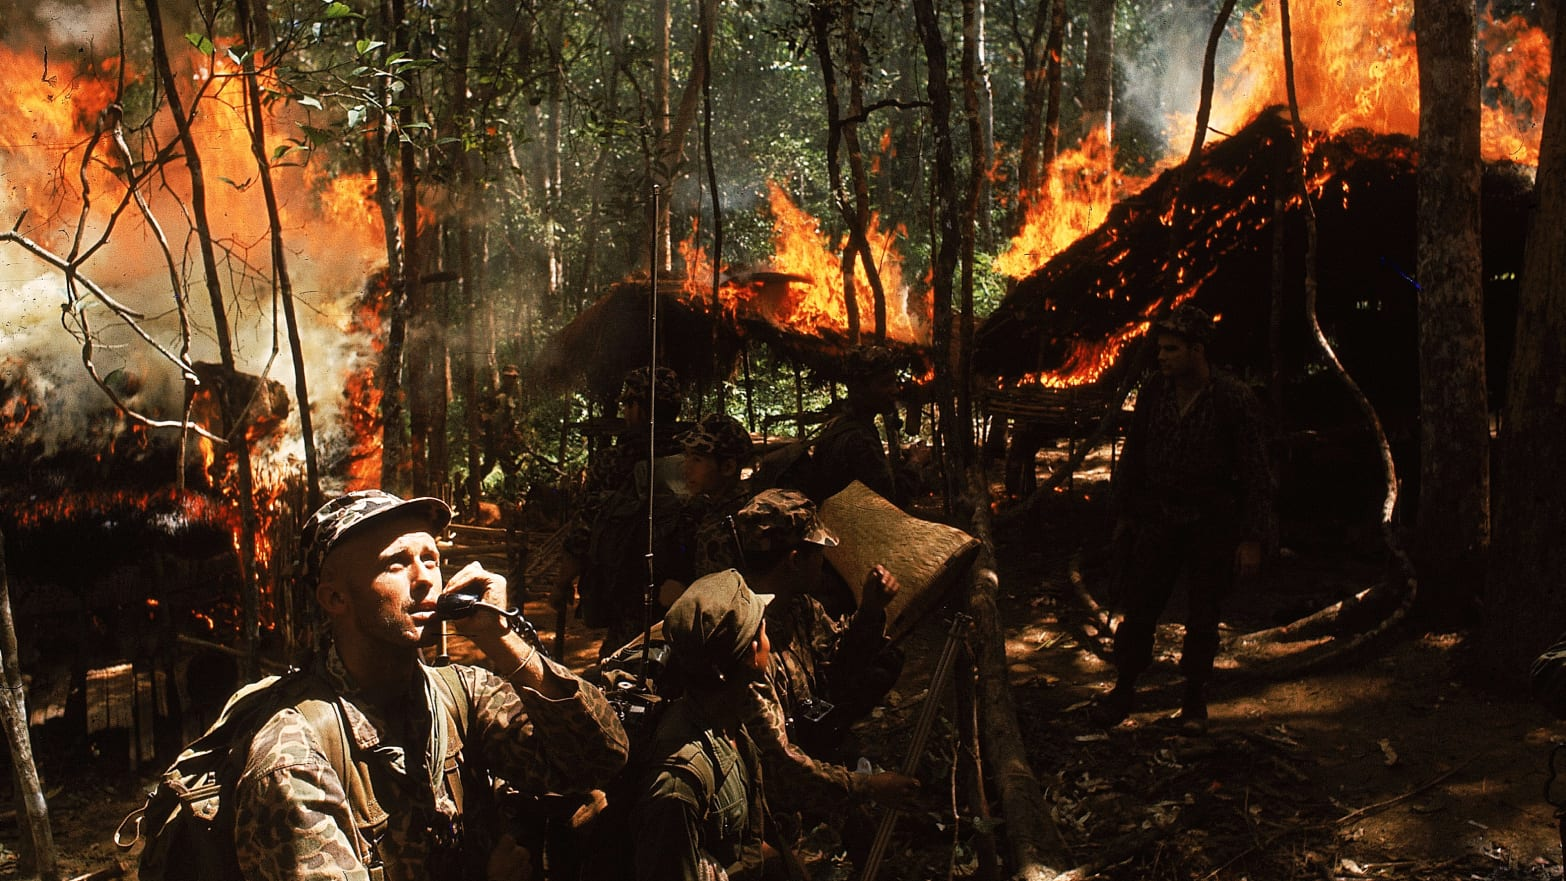 U.S. Army Special Forces Capt. Vernon Gillespie contacting his base camp by radio while Vietnamese soldiers burn down a National Liberation Front hideout.